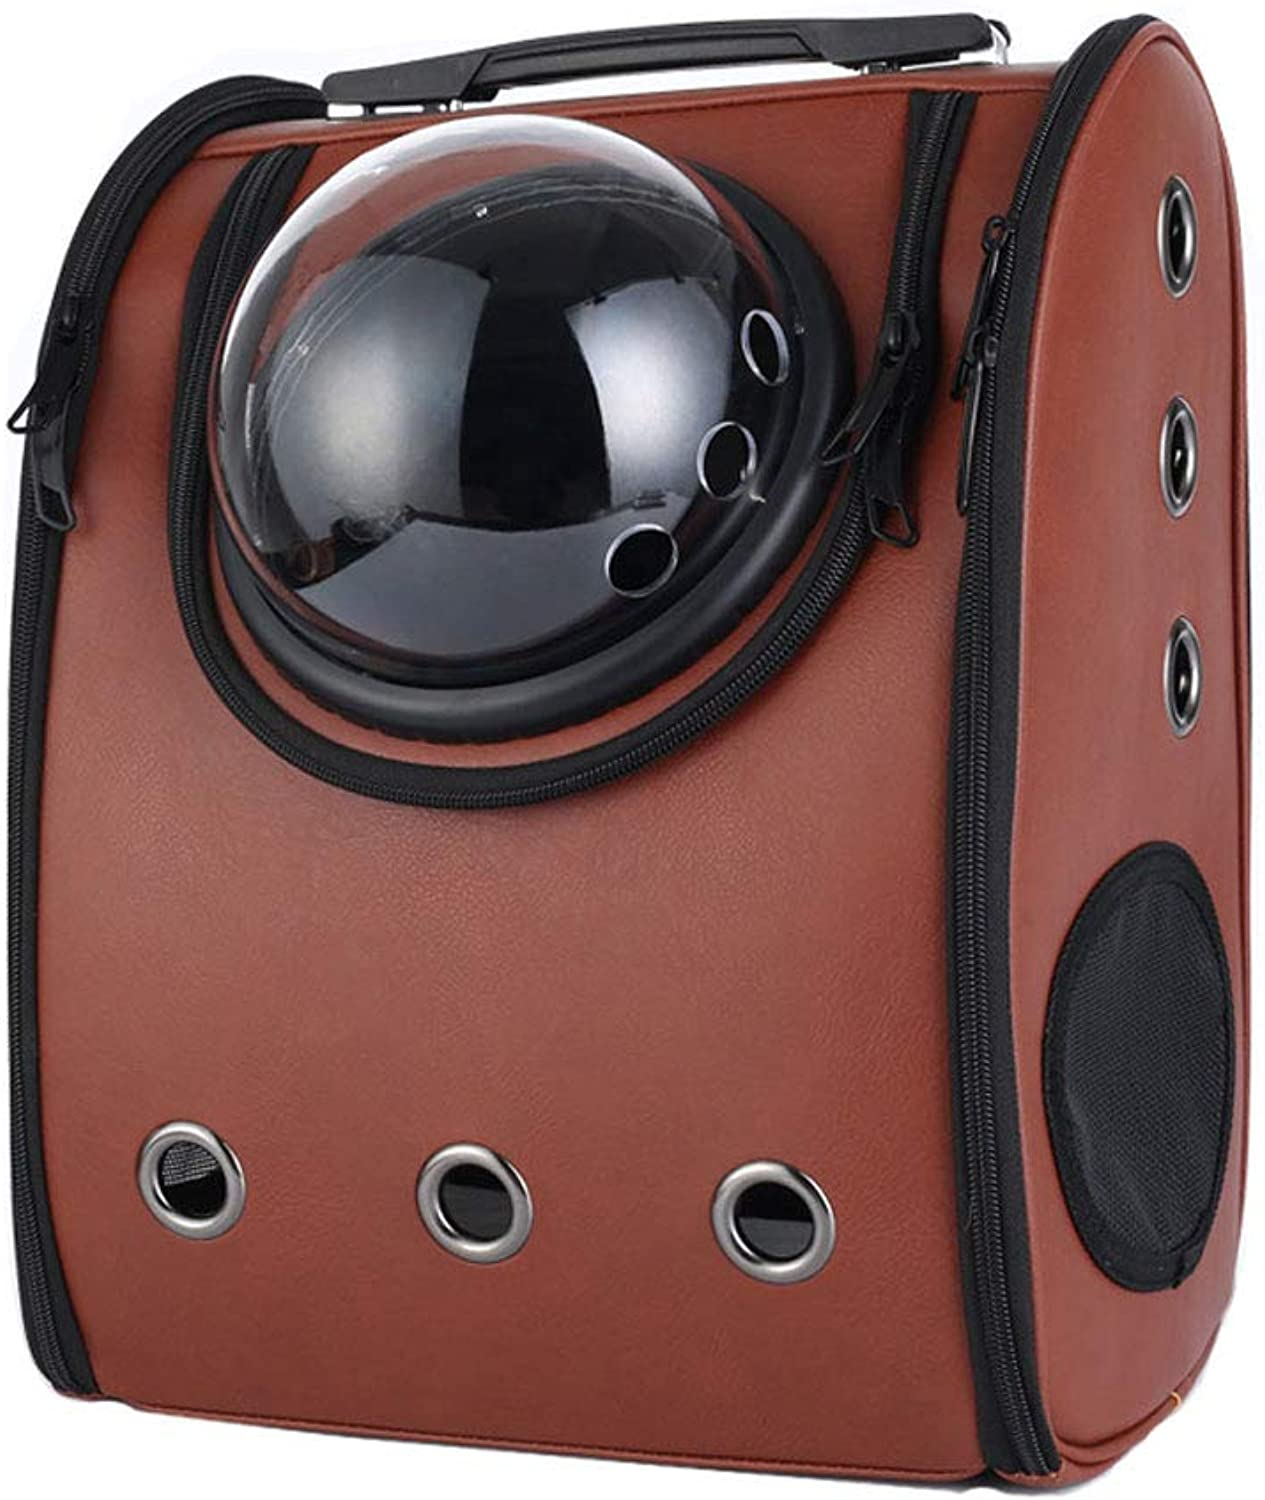 GWM Pet Backpacks Pet Portable Carrier Space Capsule Backpack, Pet Bubble Traveler Knapsack Multiple Air Vents Waterproof Lightweight Handbag for Cats Small Dogs Petite AnimalsPink,30L